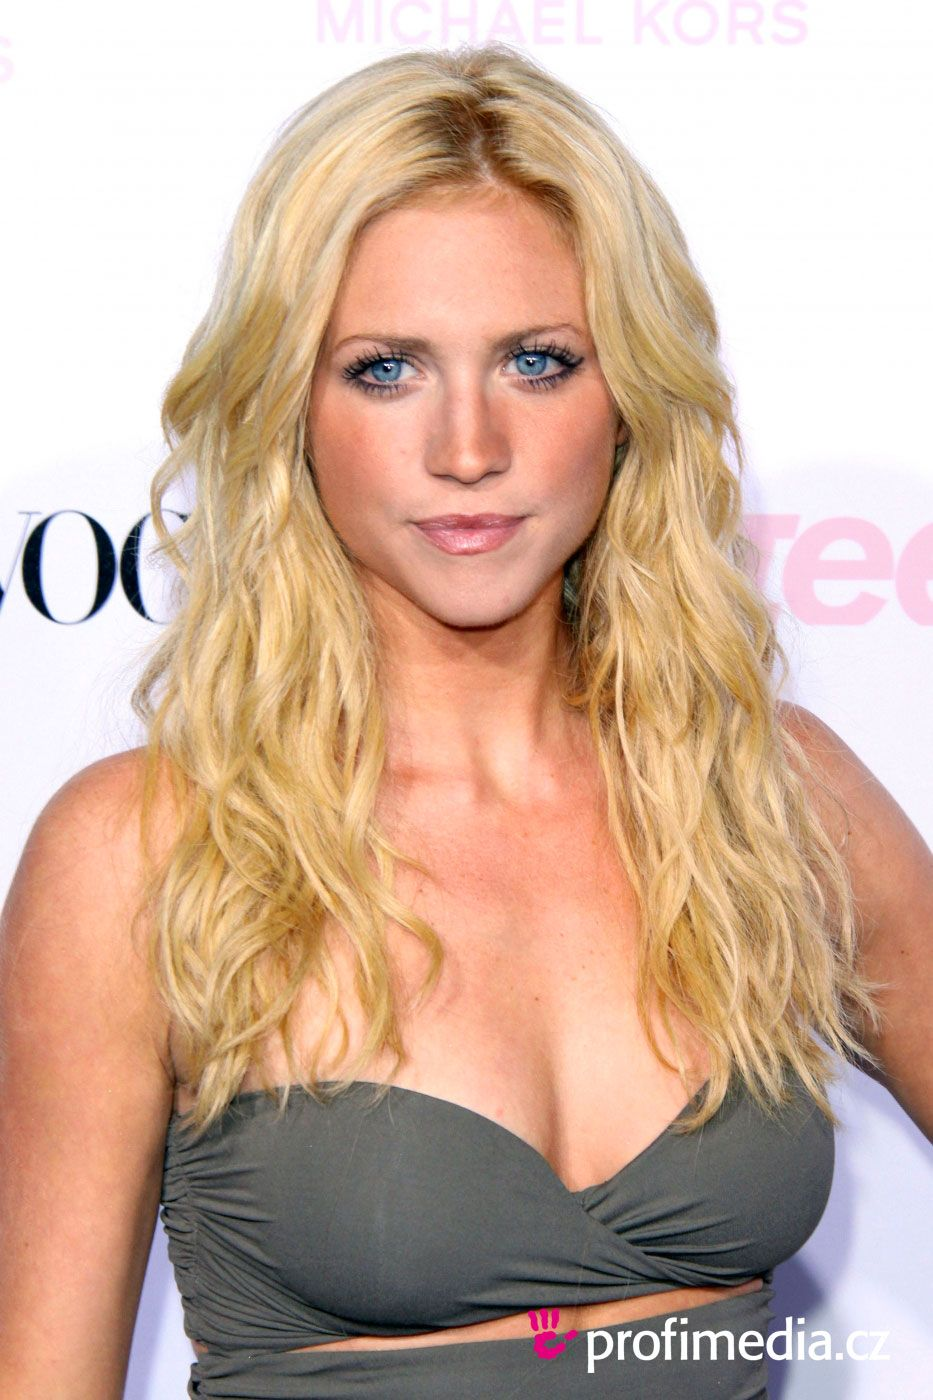 Brittany snow boob, bride feelingsof first penis penetration